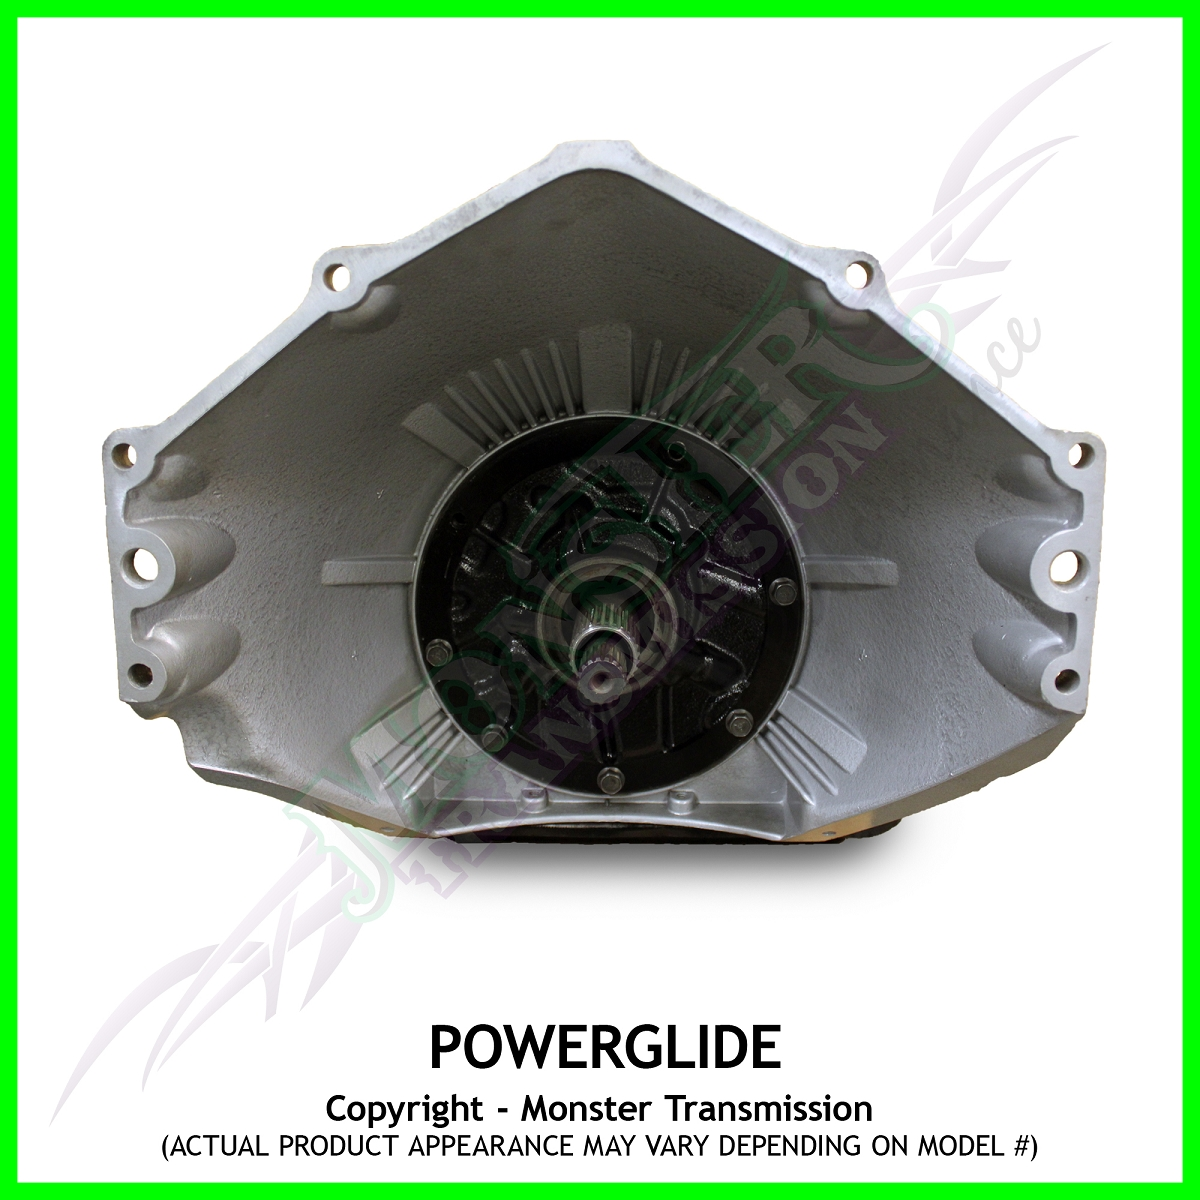 Powerglide Monster Powerglide Transmission Up To 1100hp Rebuilt